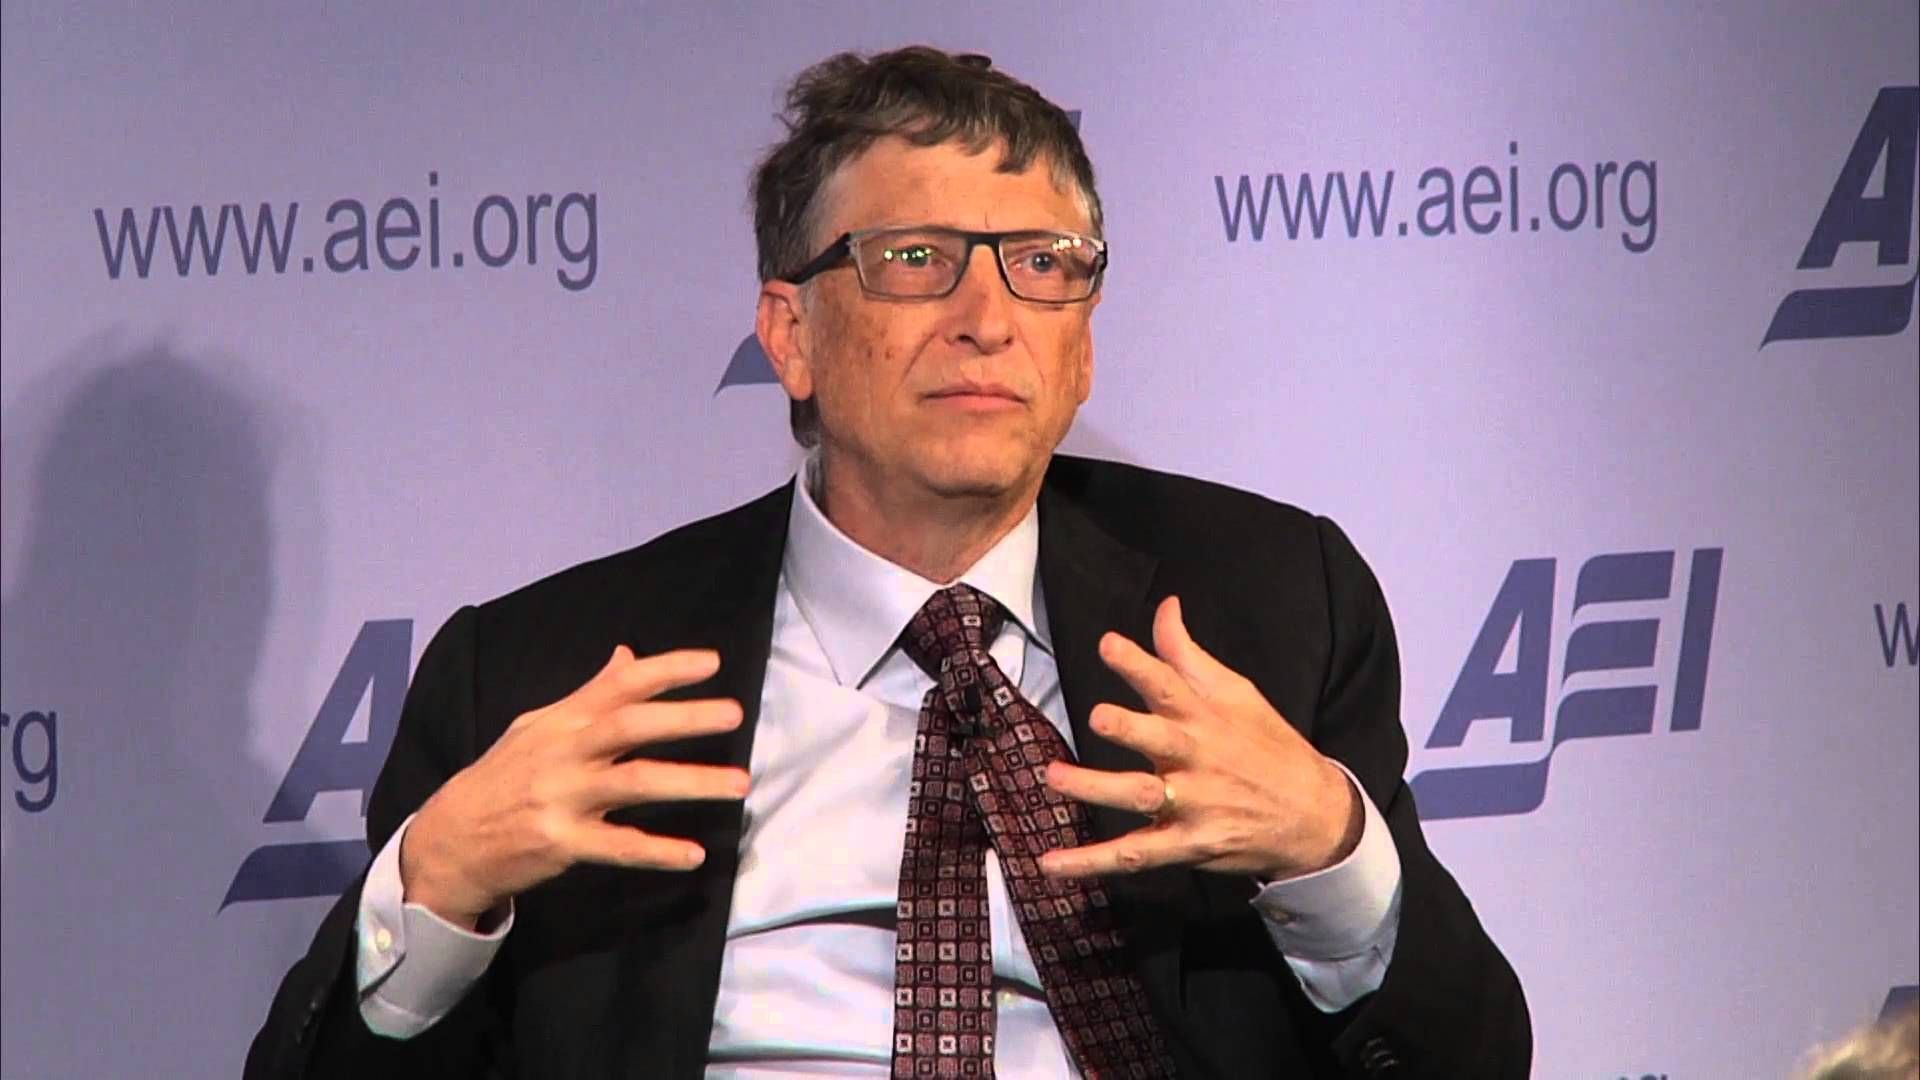 Did Gates Actually Say If You Try To Teach Too Much